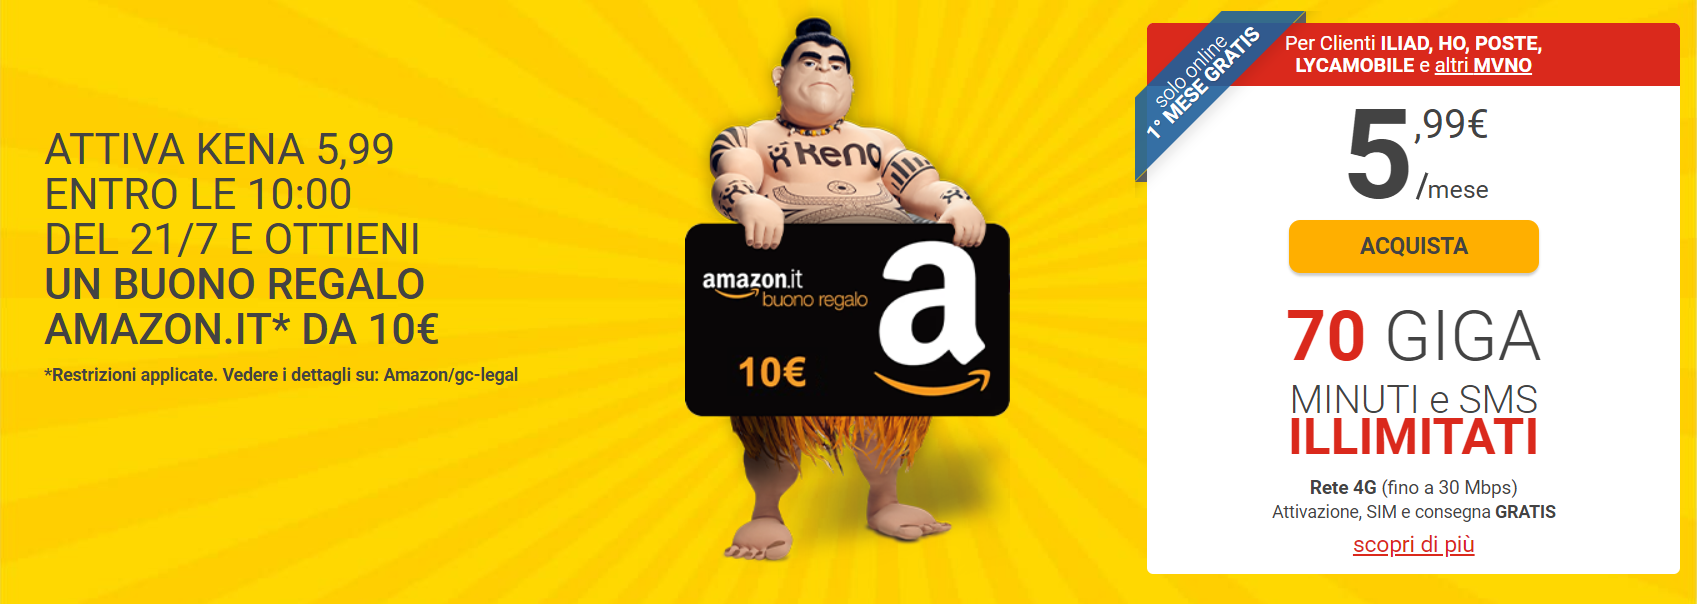 offerta kena mobile buono amazon